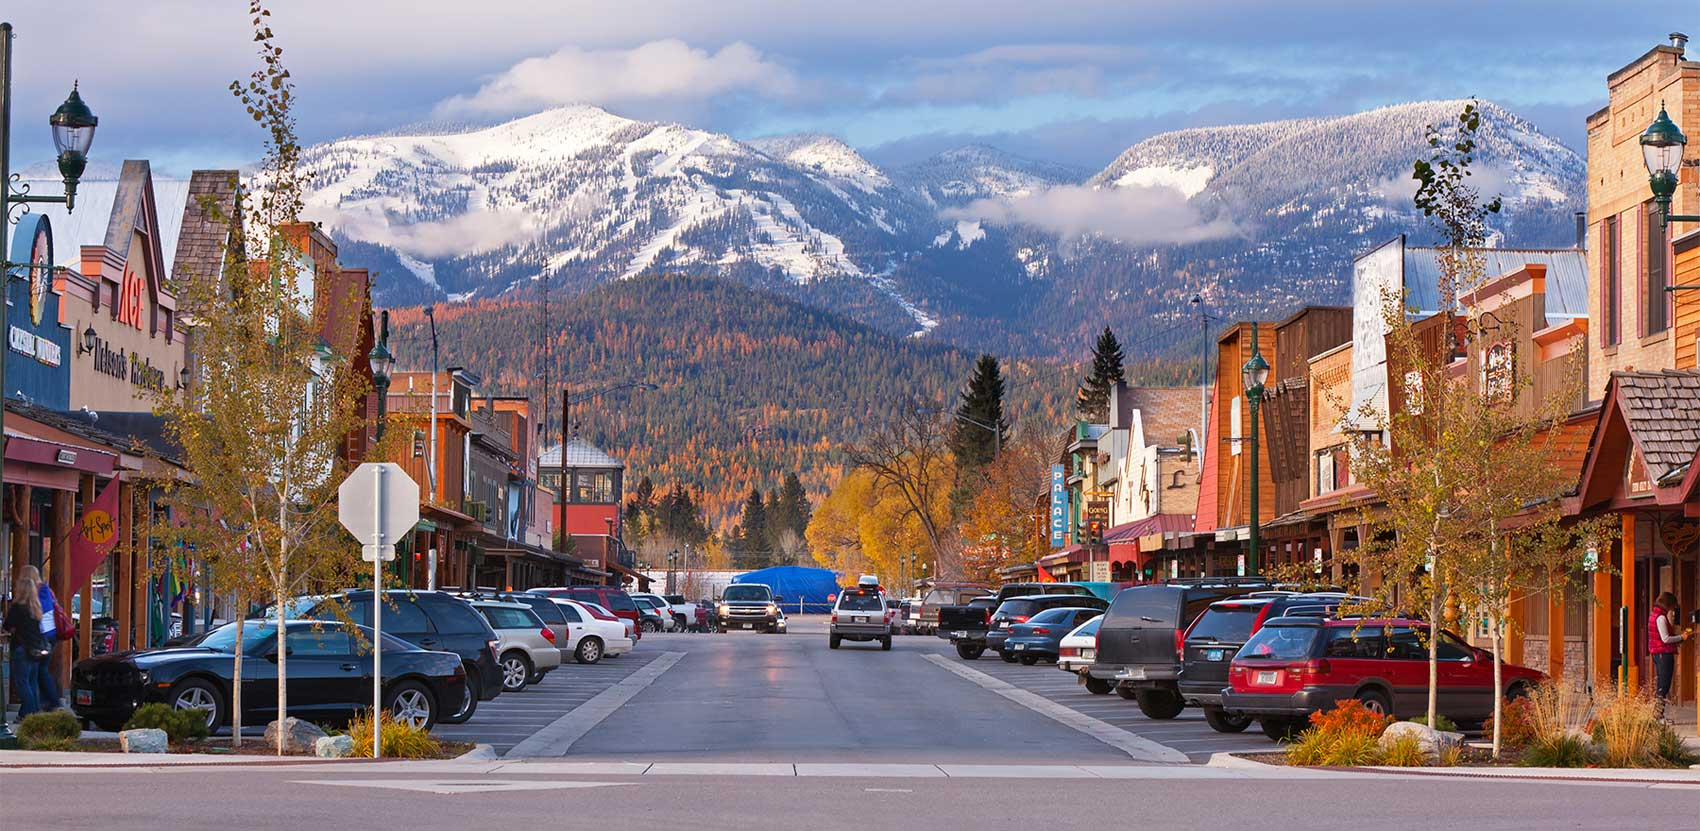 5 cities in montana that will instantly feel like home